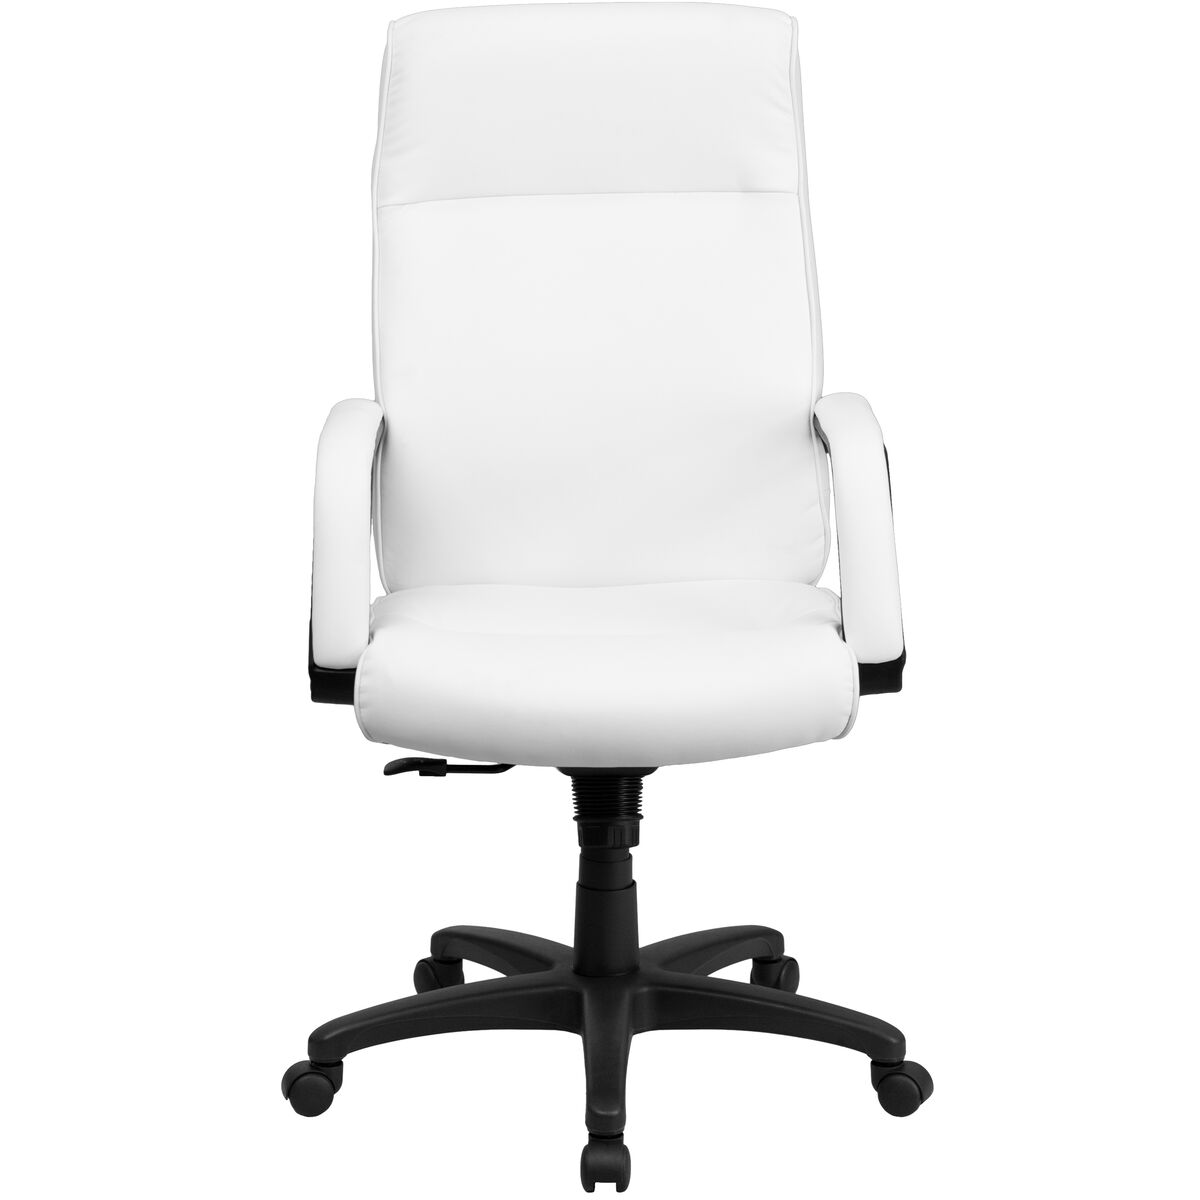 Our High Back White Leather Executive Swivel Chair With Memory Foam Padding Arms Is On